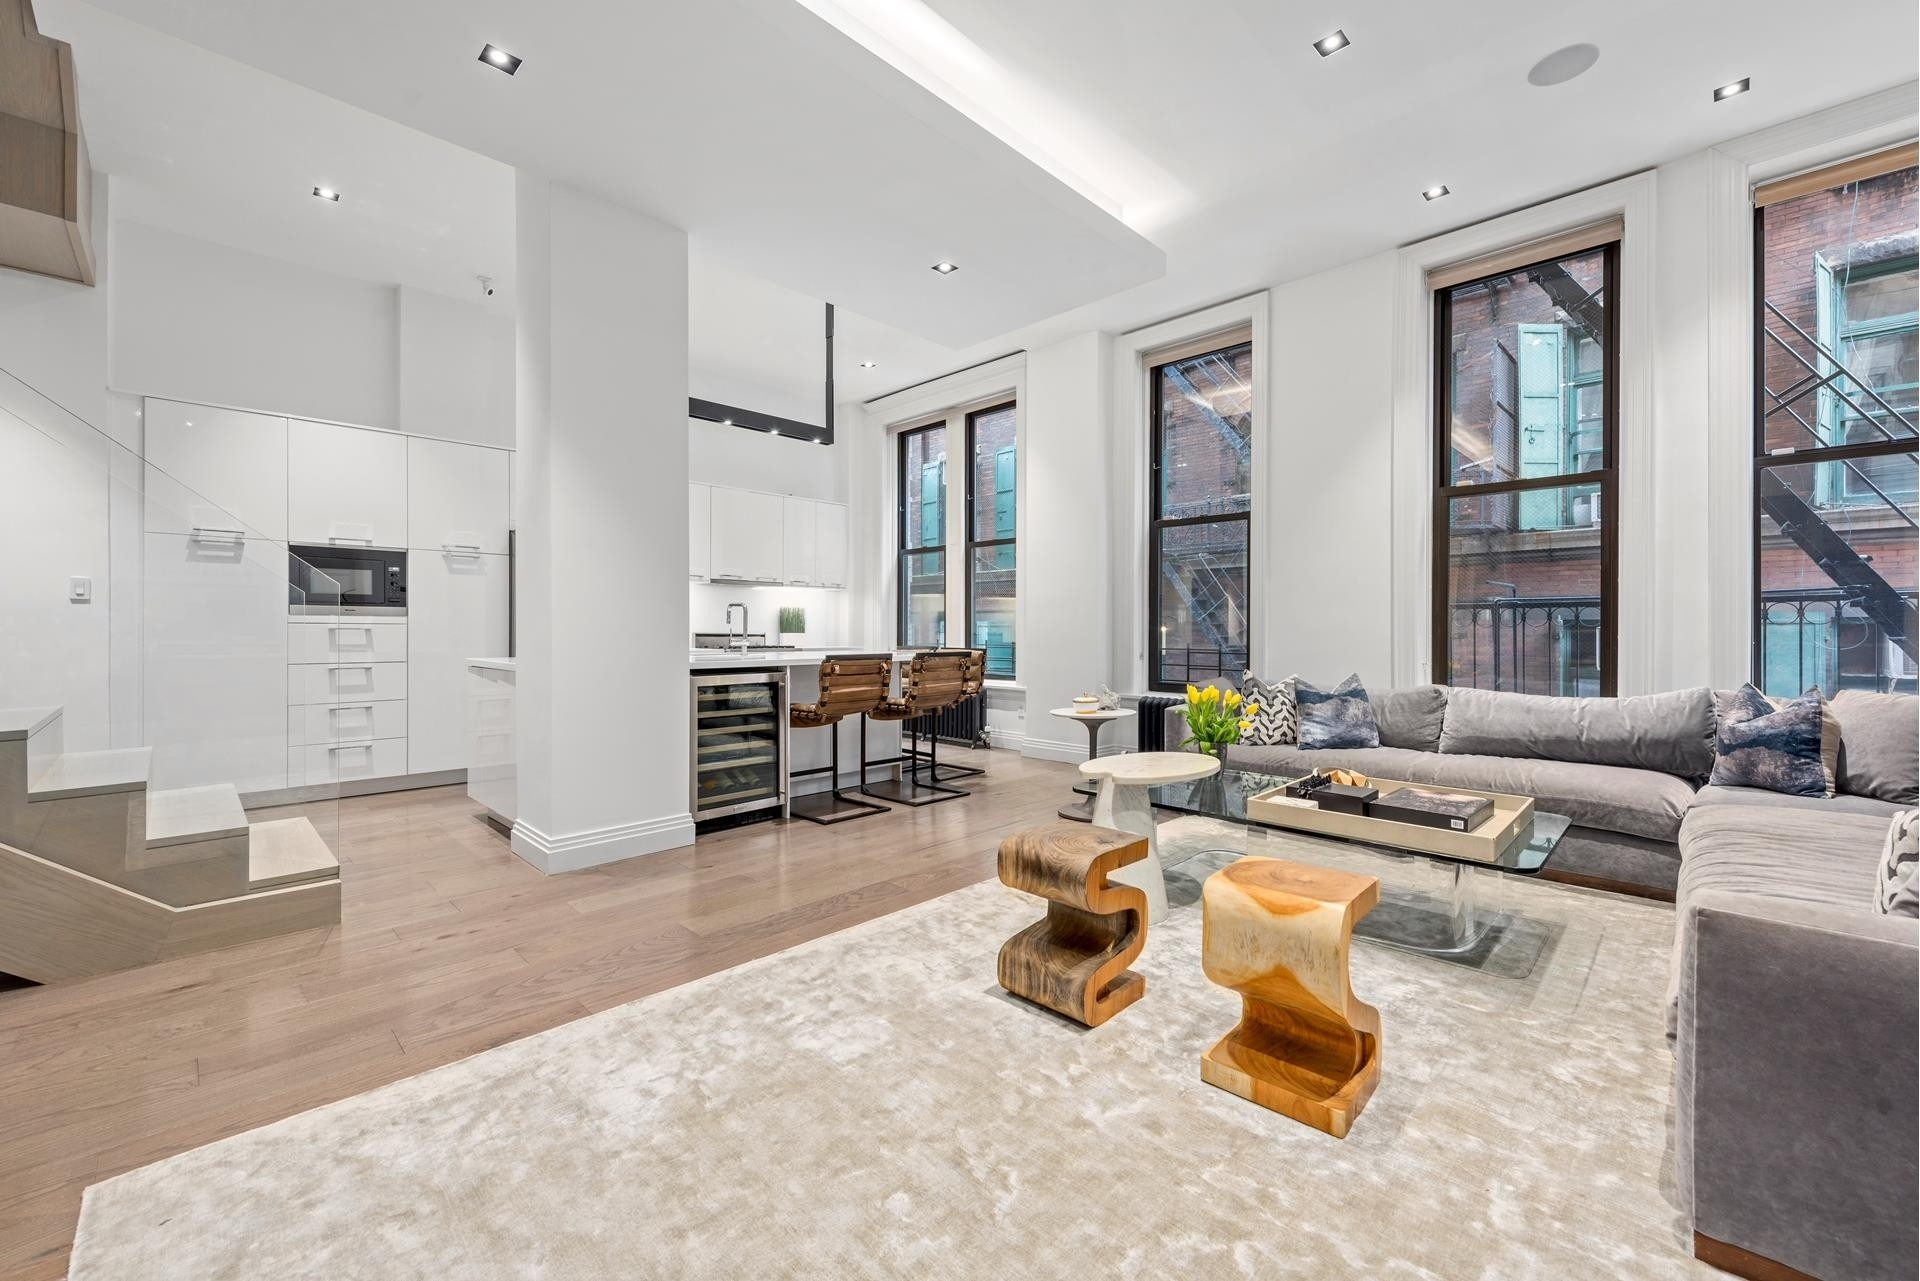 Co-op Properties for Sale at 366 Broadway, 2/3D TriBeCa, New York, NY 10013